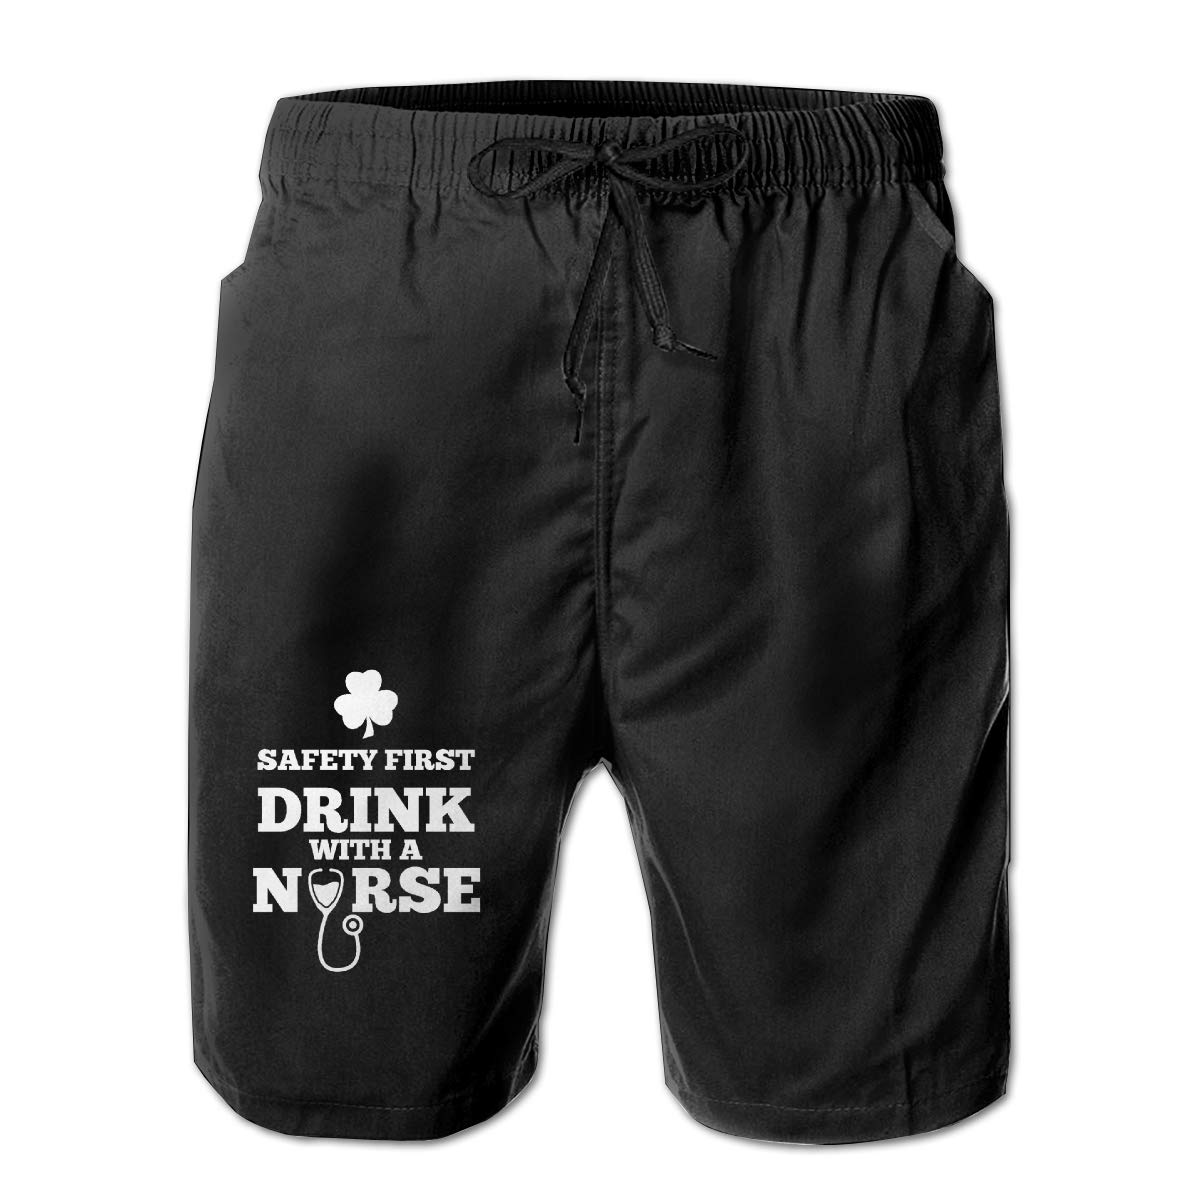 Monwe Safety First Drink with A Nurse Boys Summer Casual Shorts,Beach Shorts Comfortable Shorts